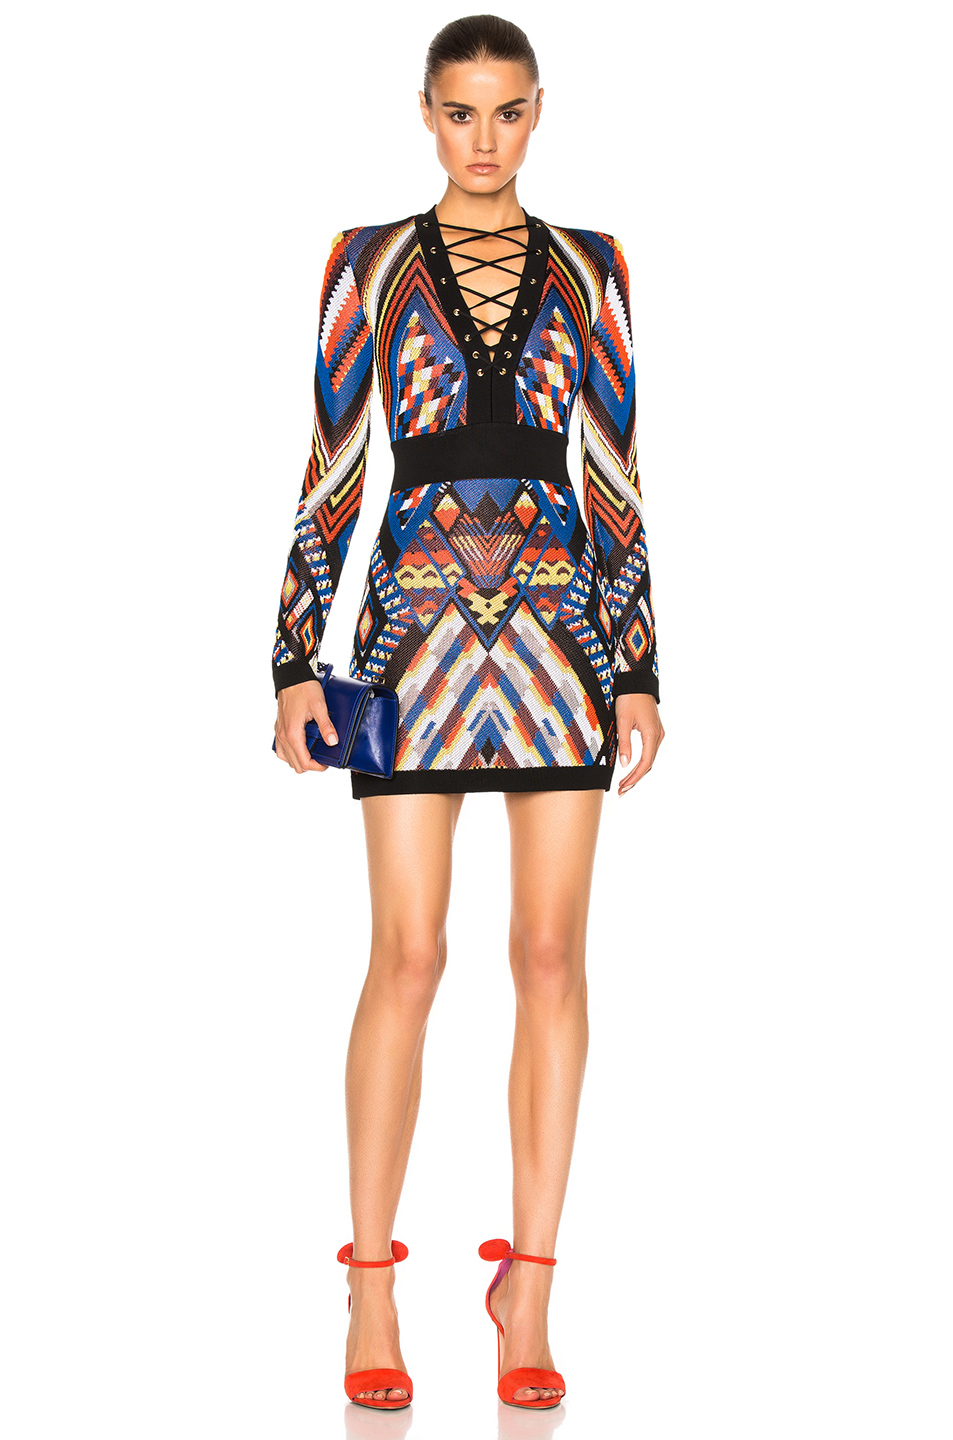 BALMAIN Lace Up Mini Dress in Abstract,Black,Blue,Orange